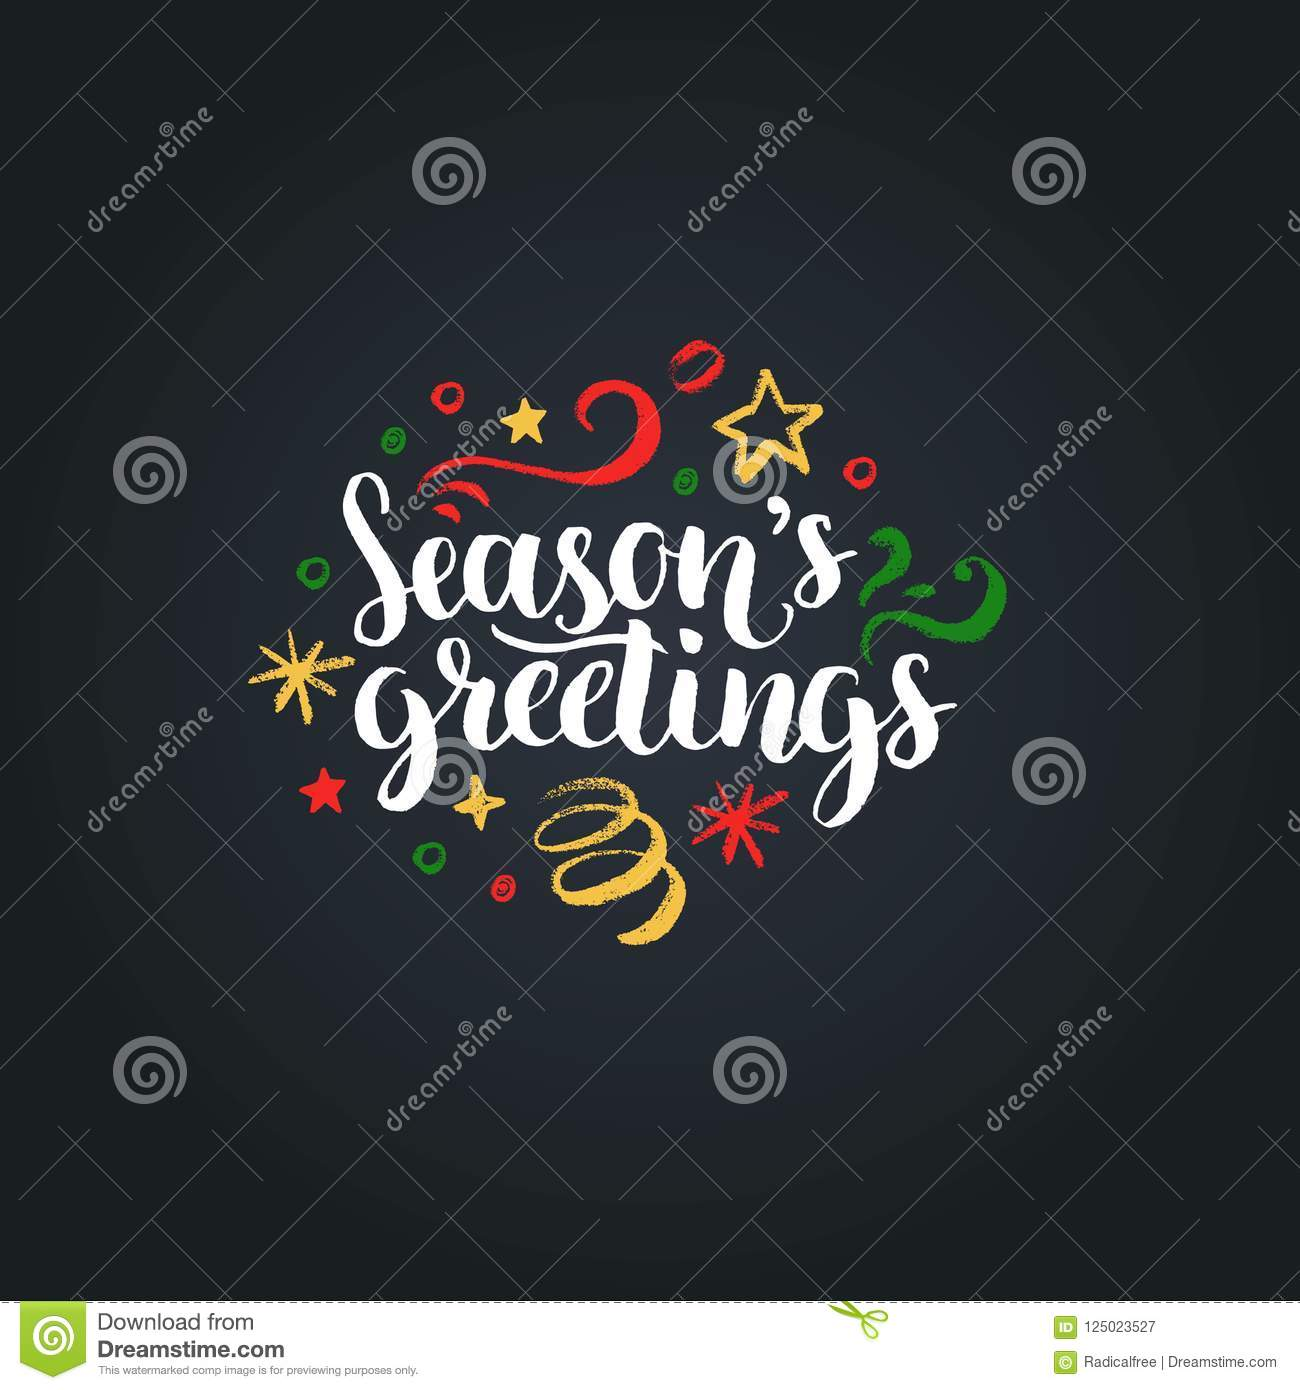 Seasons greetings lettering on black background vector hand drawn download seasons greetings lettering on black background vector hand drawn christmas illustration happy holidays m4hsunfo